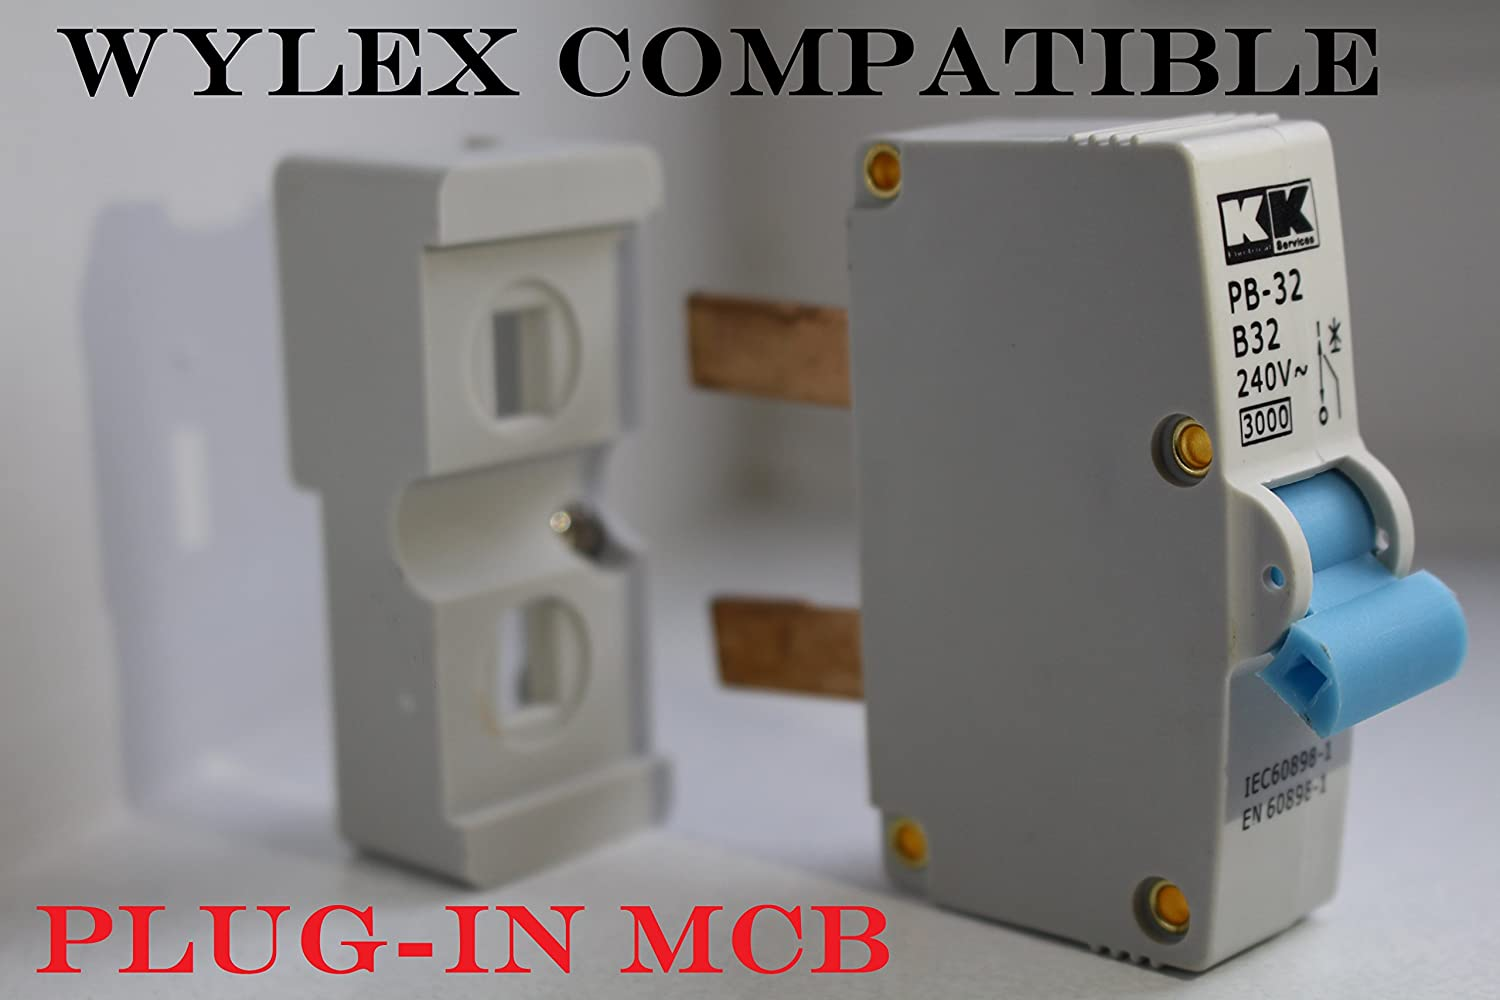 wylex plug in mcb compatible fuse 6 amp - 16 amp - 32 amp trip switch (32  amp): amazon co uk: business, industry & science